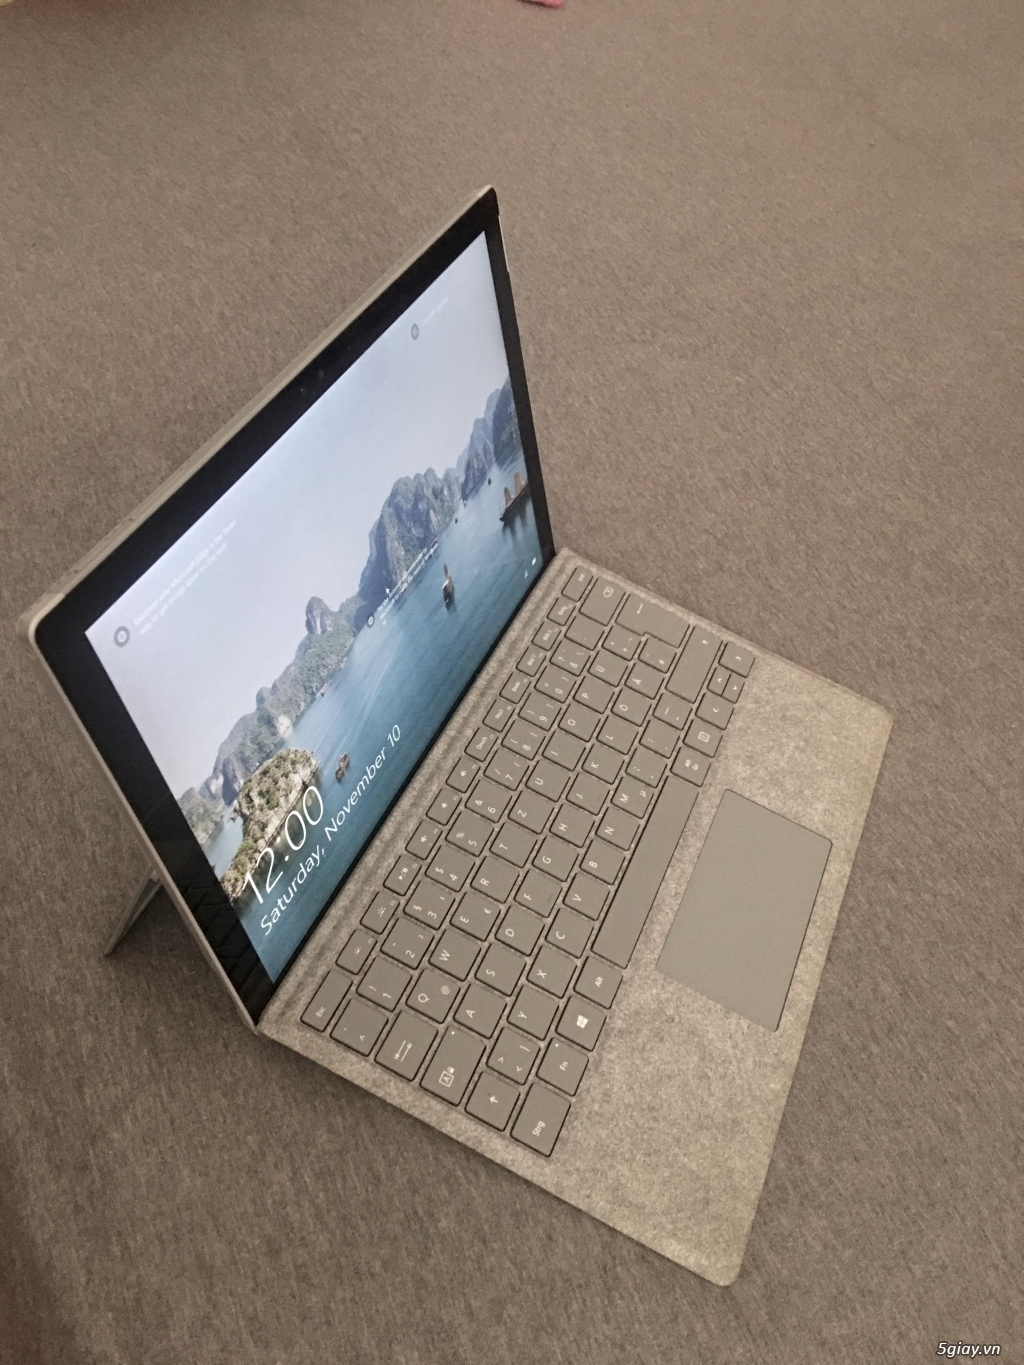 Surface Pro 4 i5/8GB/256 + type cover + mouse arc - 3